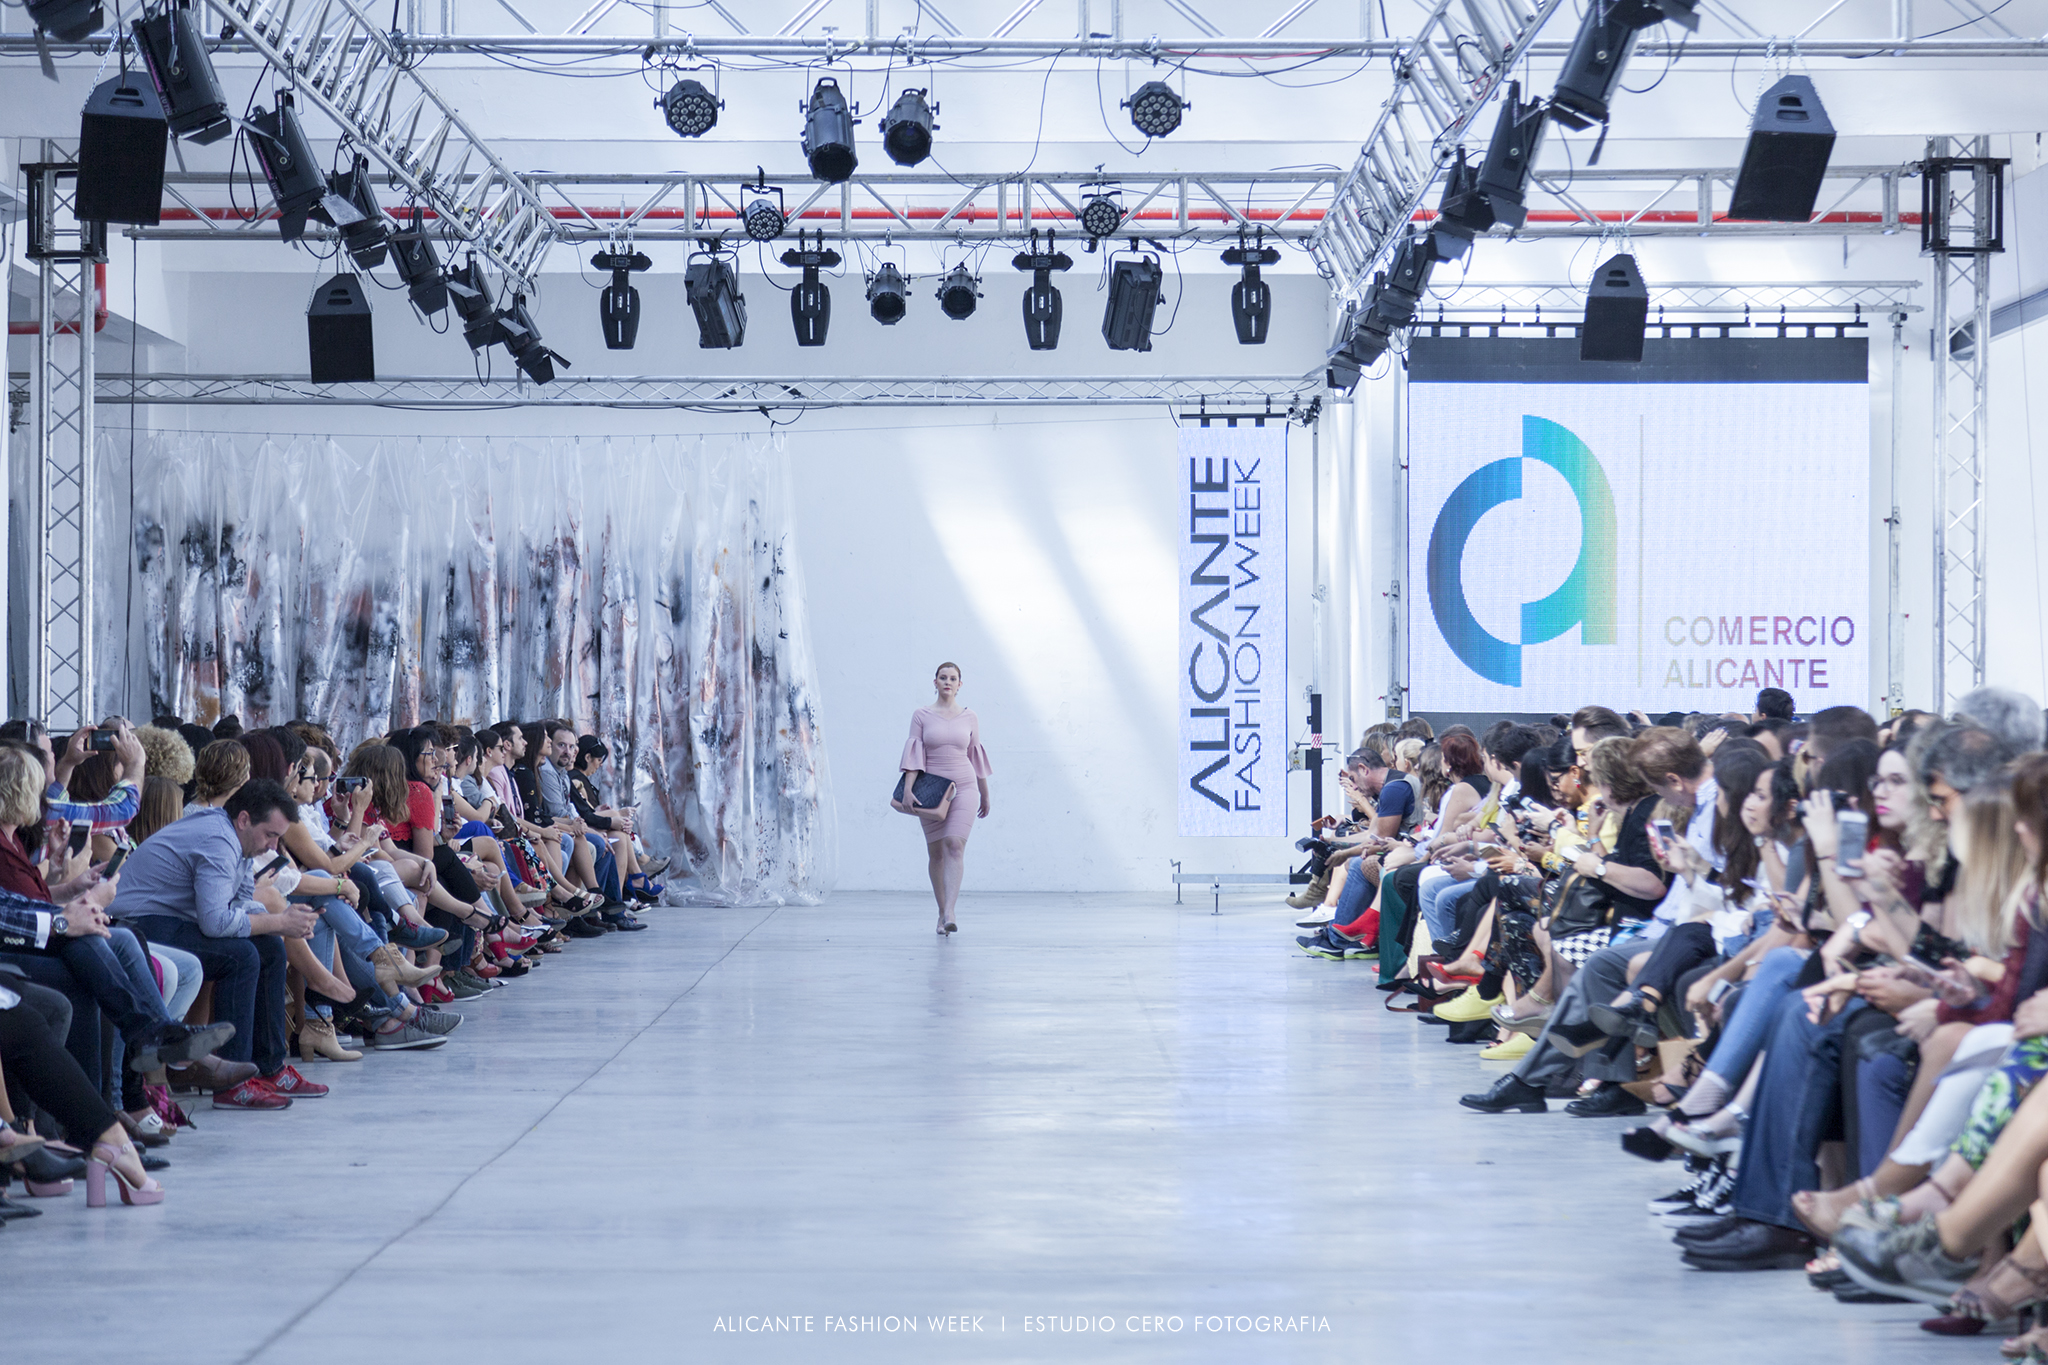 Comercio Alicante Alicante Fashion Week 2017